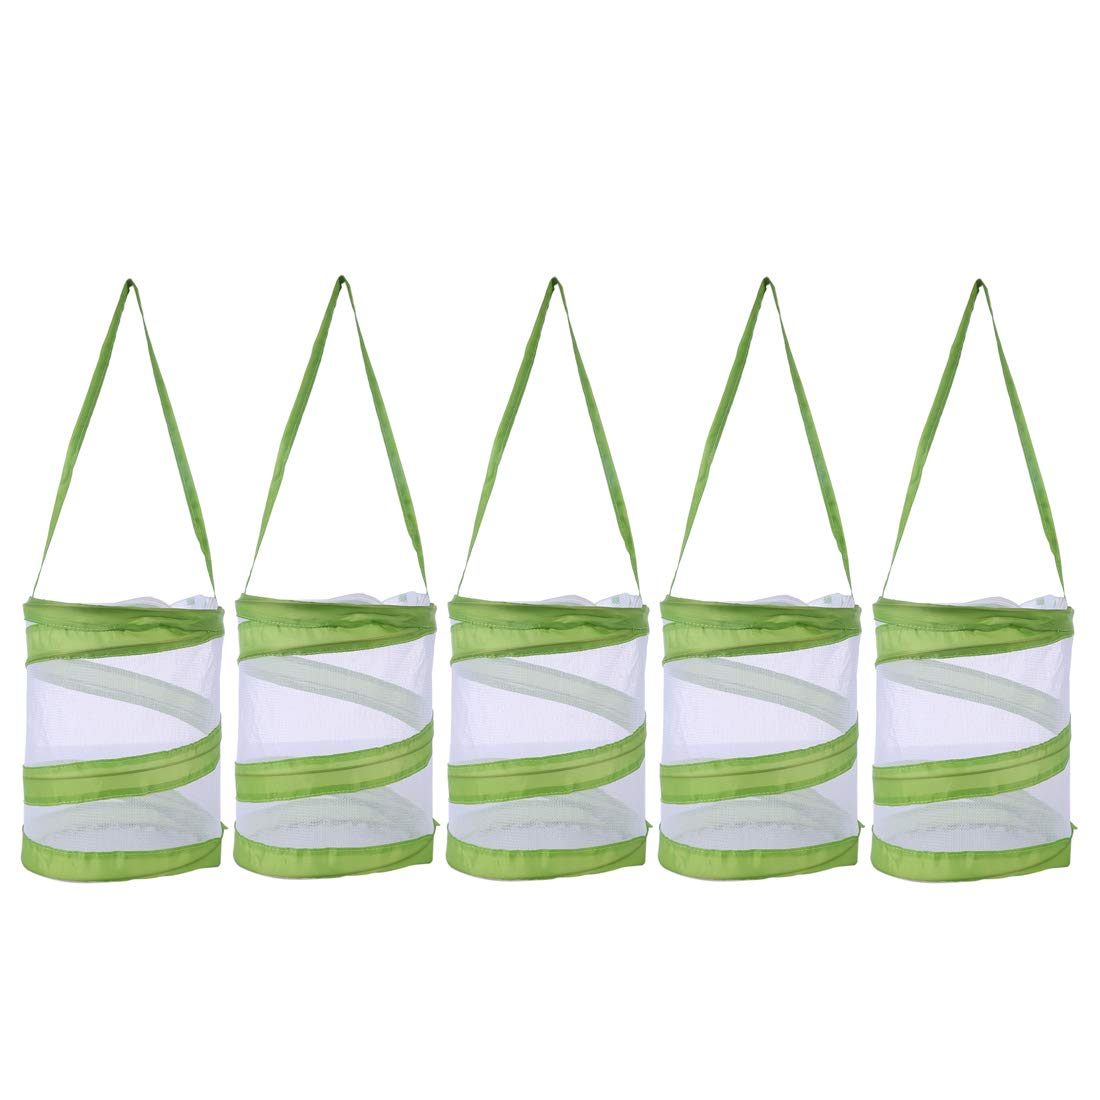 Yamix 5Pack Mini Mesh Butterfly House Butterfly and Insect Habitat Cage Butterfly Terrarium Pop-up by Yamix